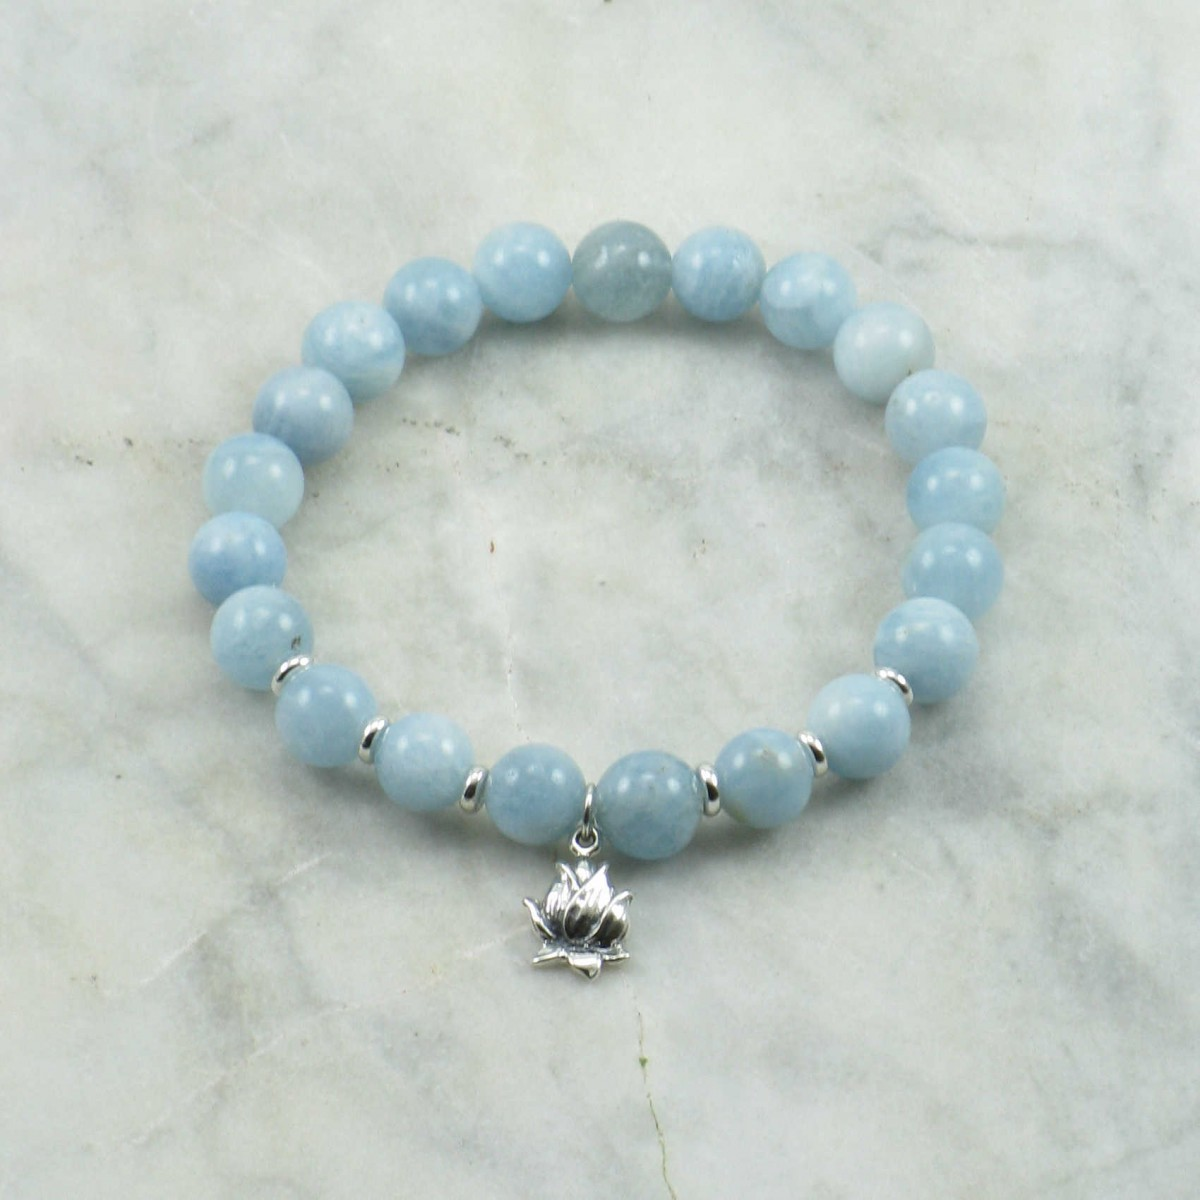 Truth_Mala_Bead_Bracelet_21_Aquamarine_Mala_Beads_Buddhist_Prayer_Beads_Wrist